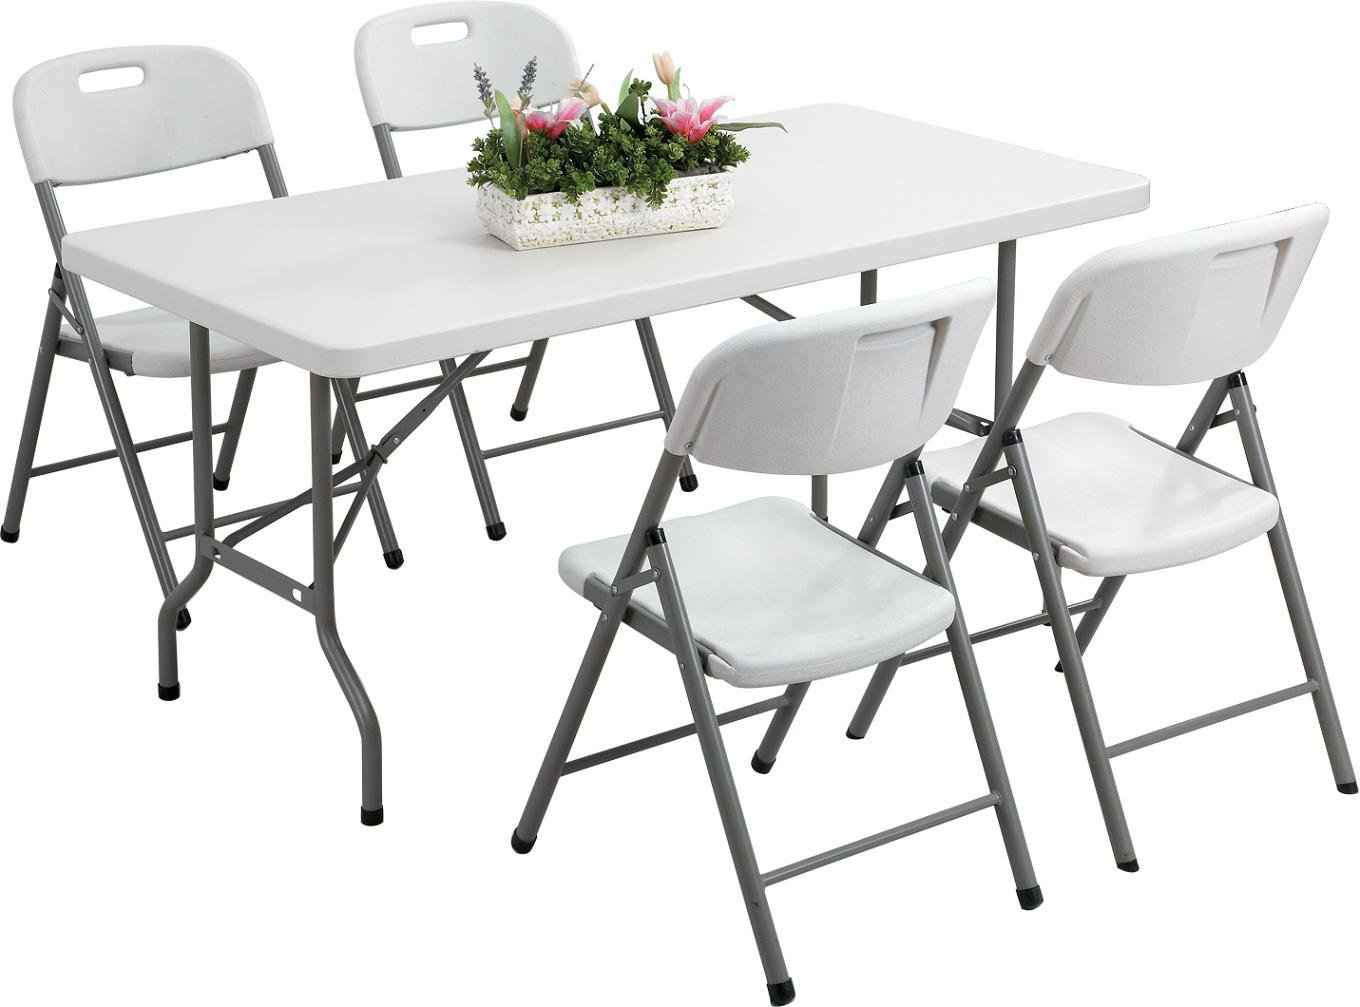 garden tables and chair